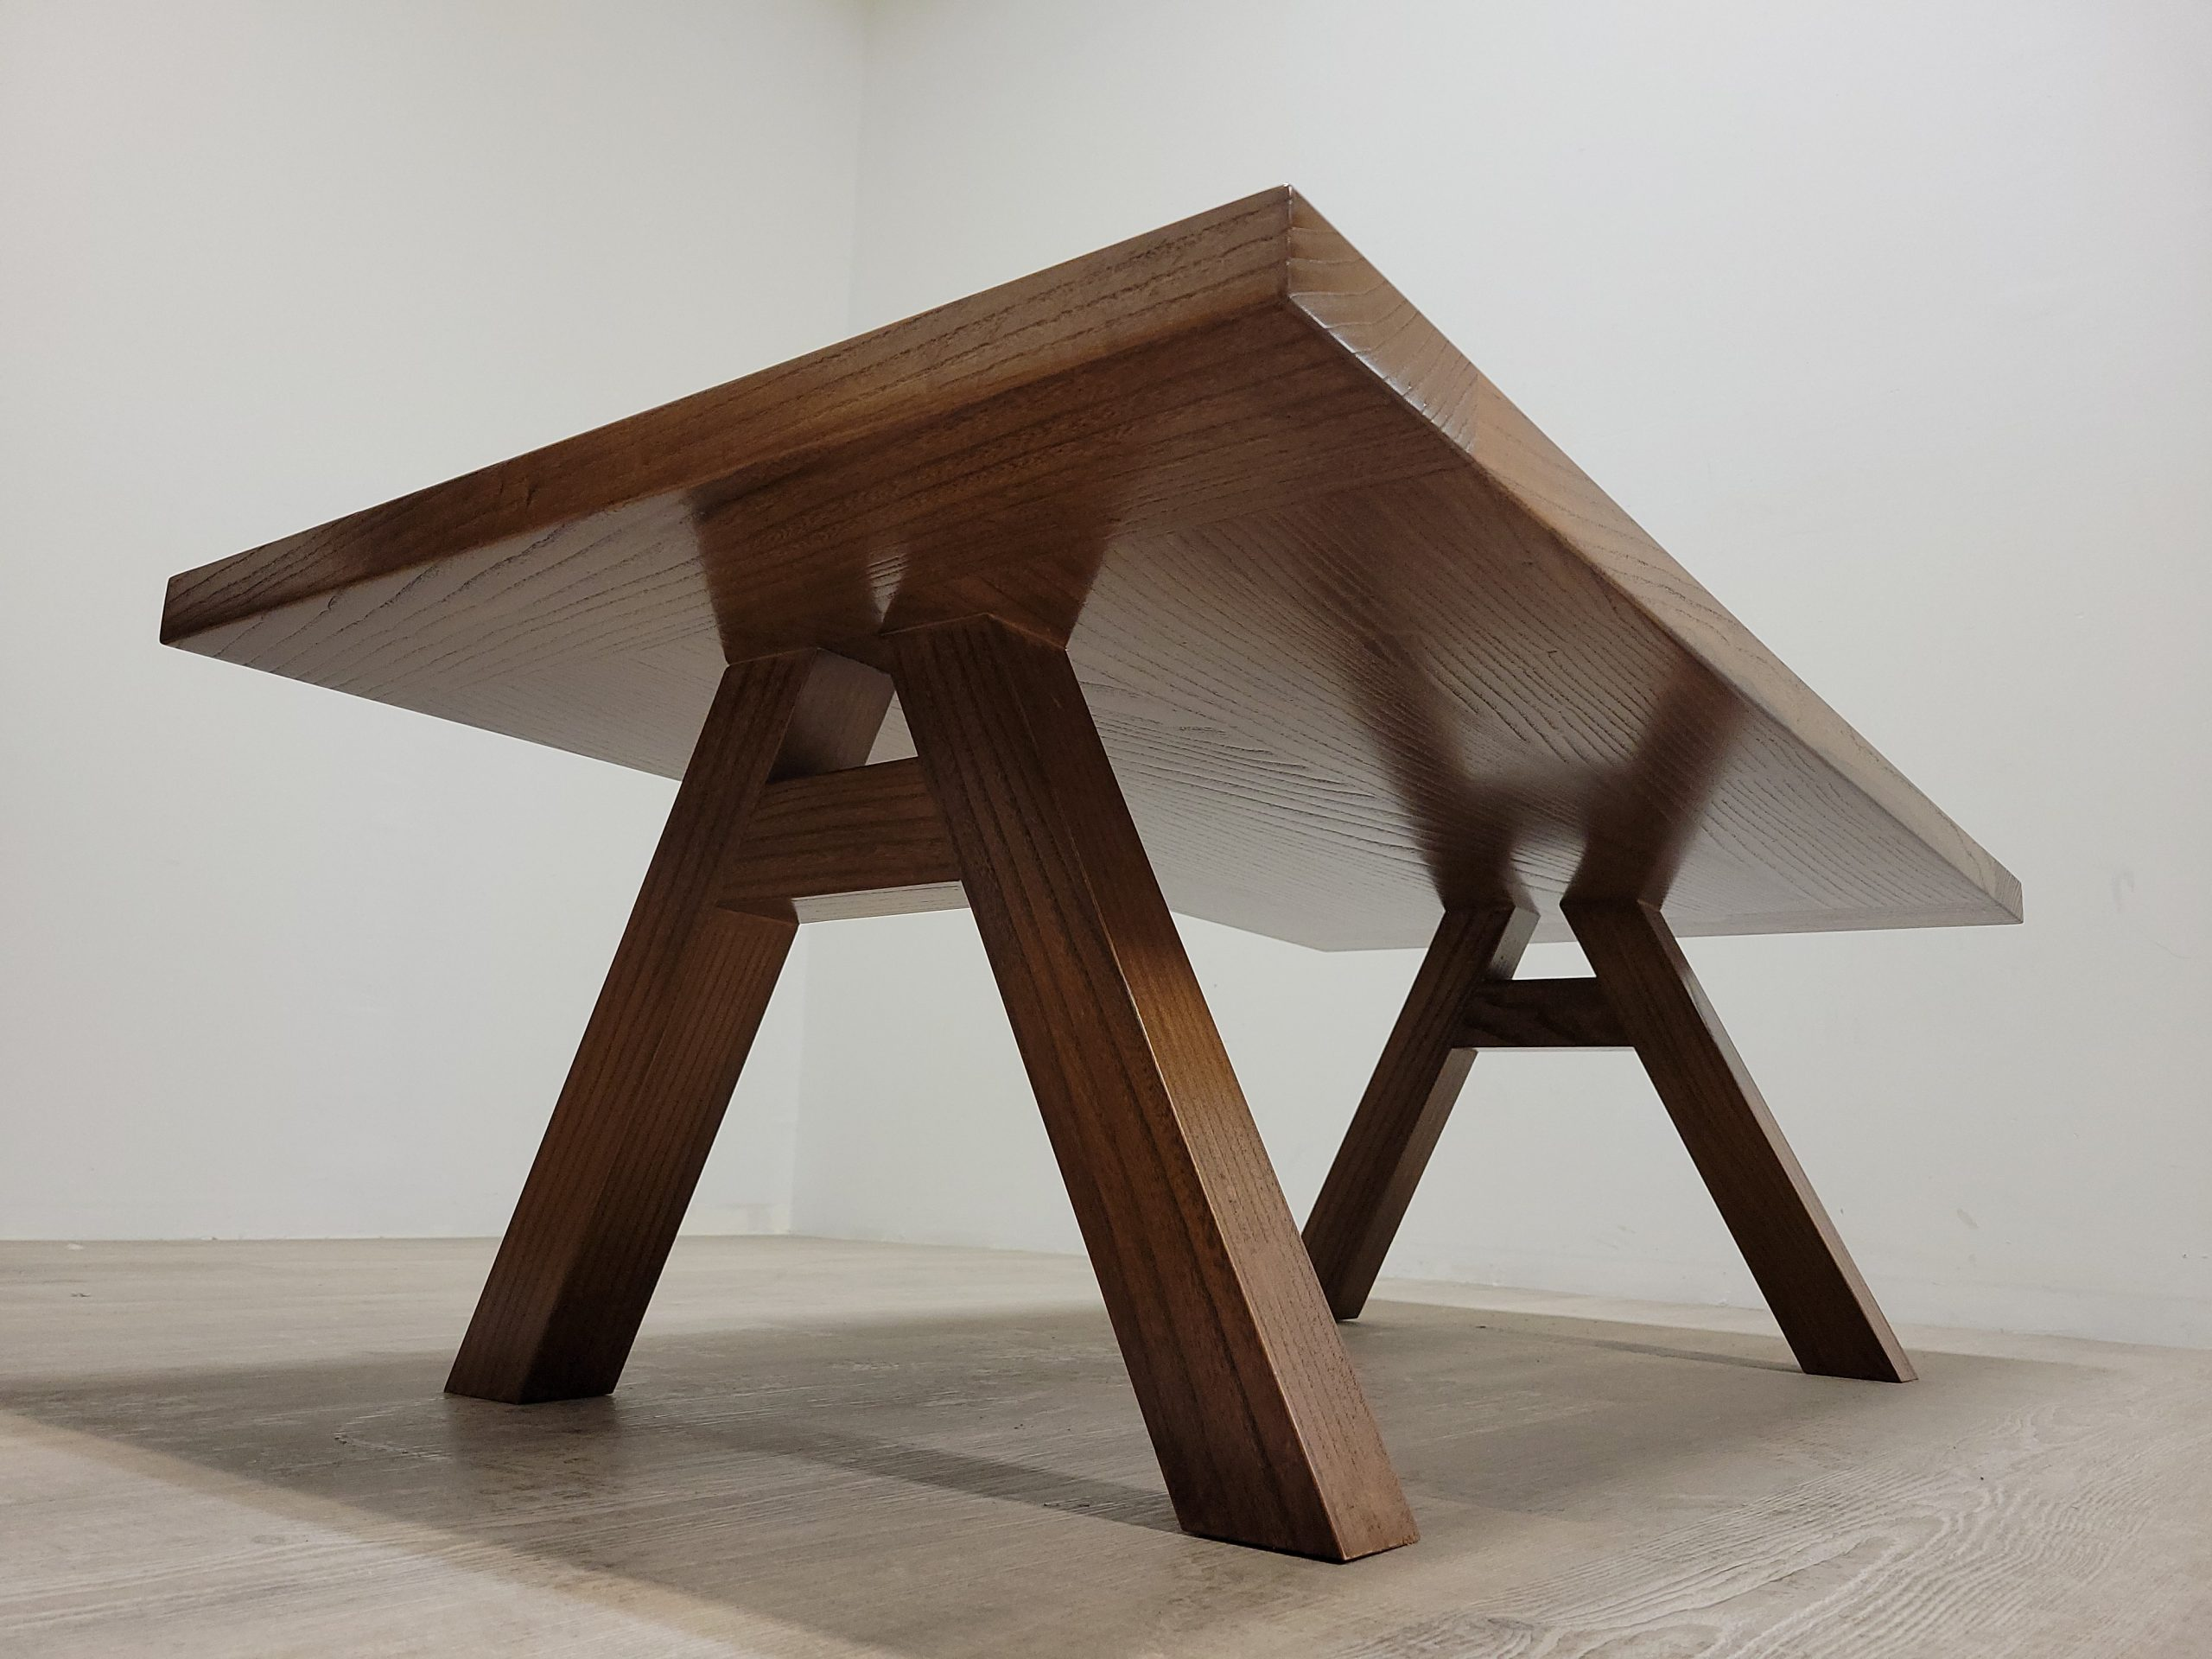 https://competitivewoodcraft.com/wp-content/uploads/2021/03/Coffe-Tables3-scaled.jpg